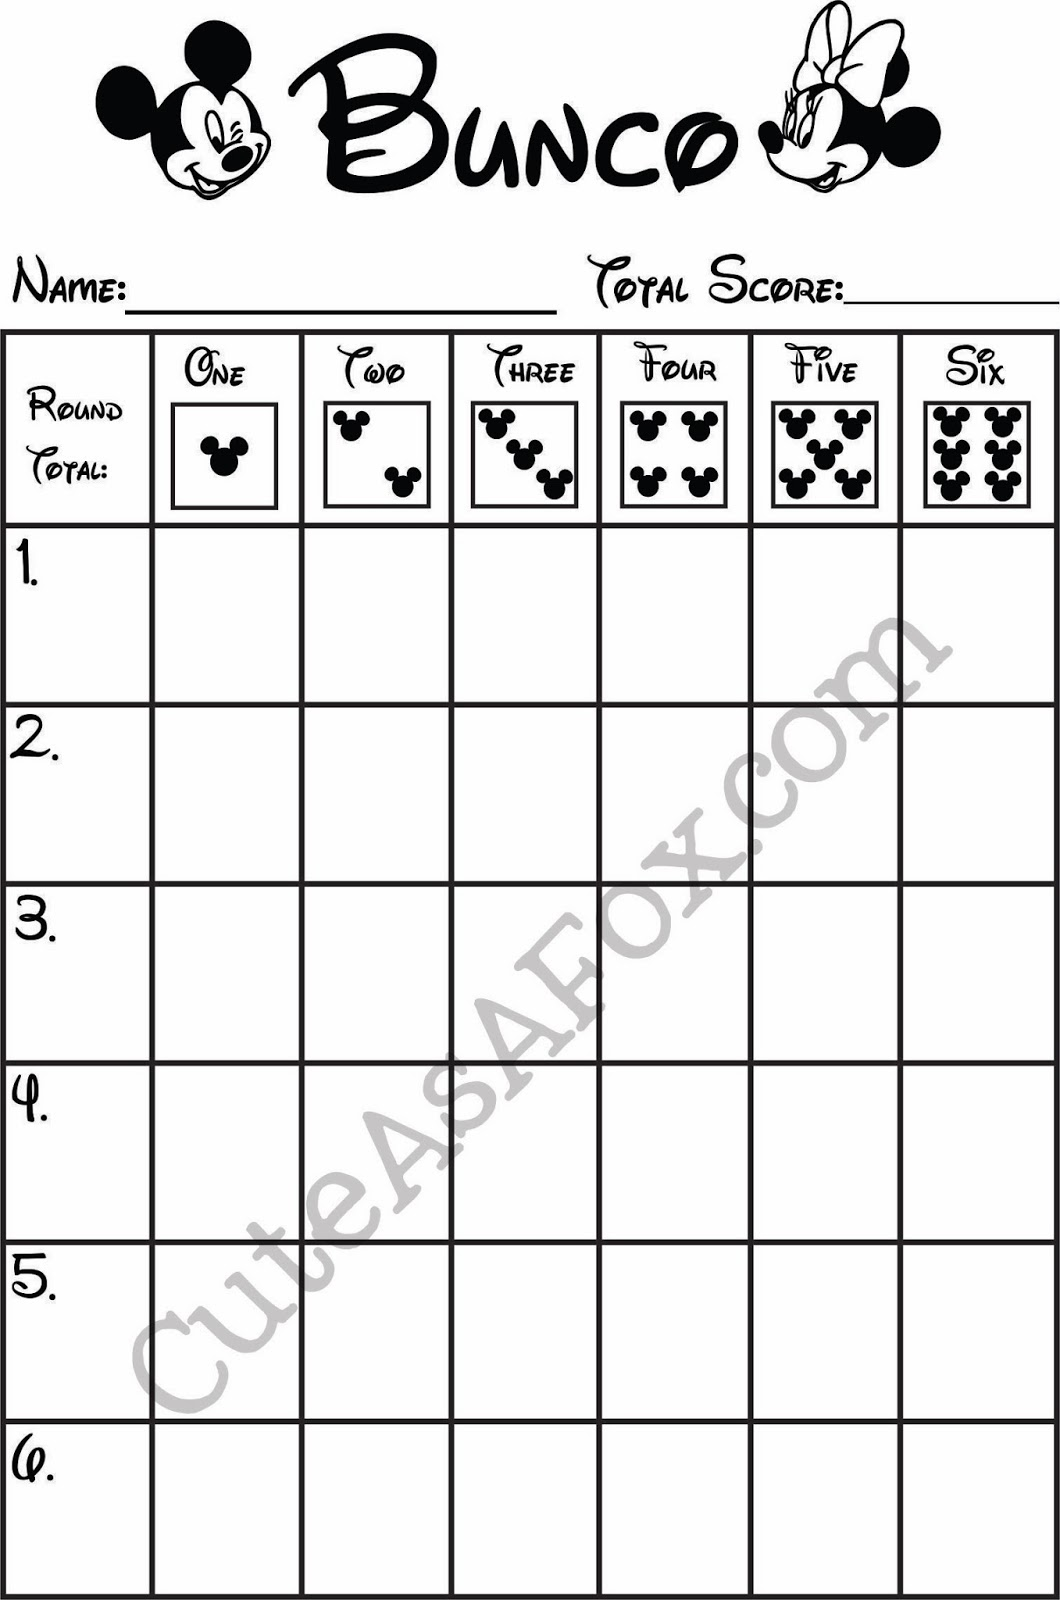 photograph regarding Cute Bunco Score Sheets Printable named Disneyside Bunco Get together Ranking Card Totally free Printable! - Red